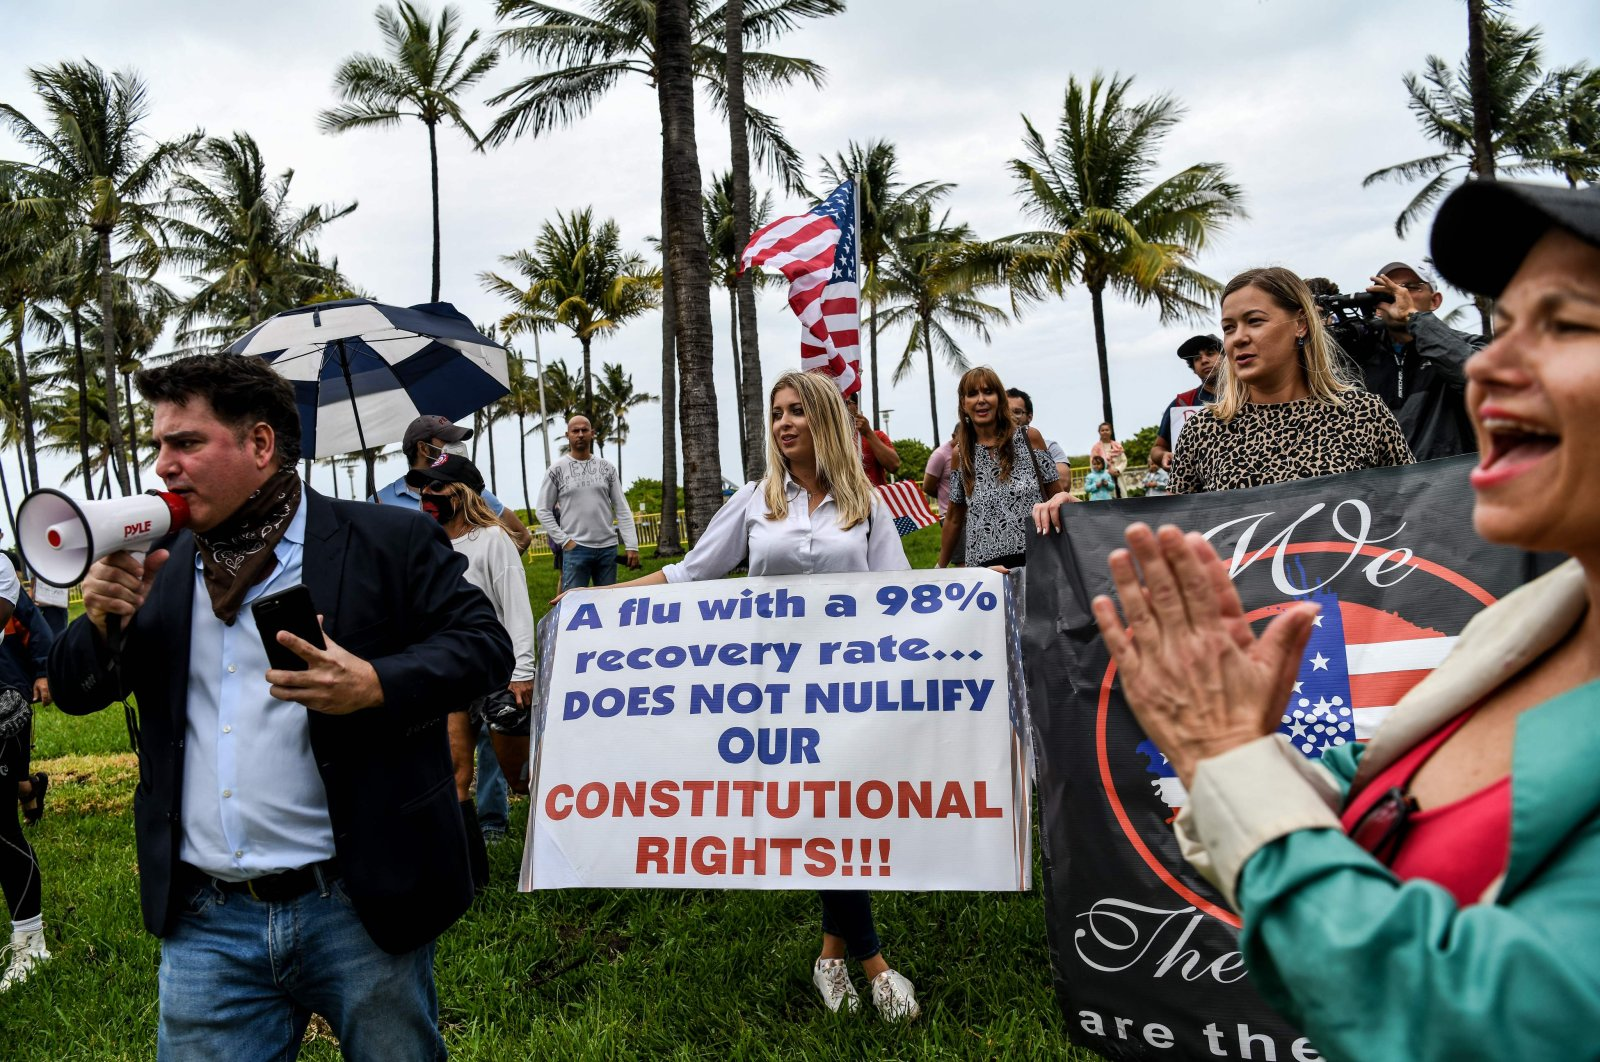 """Protestors hold placards, wave the American flag and shout slogans as they participate in a """"Freedom Rally"""" protest in support of reopening Florida, South Beach, Miami, May 10, 2020. (AFP Photo)"""